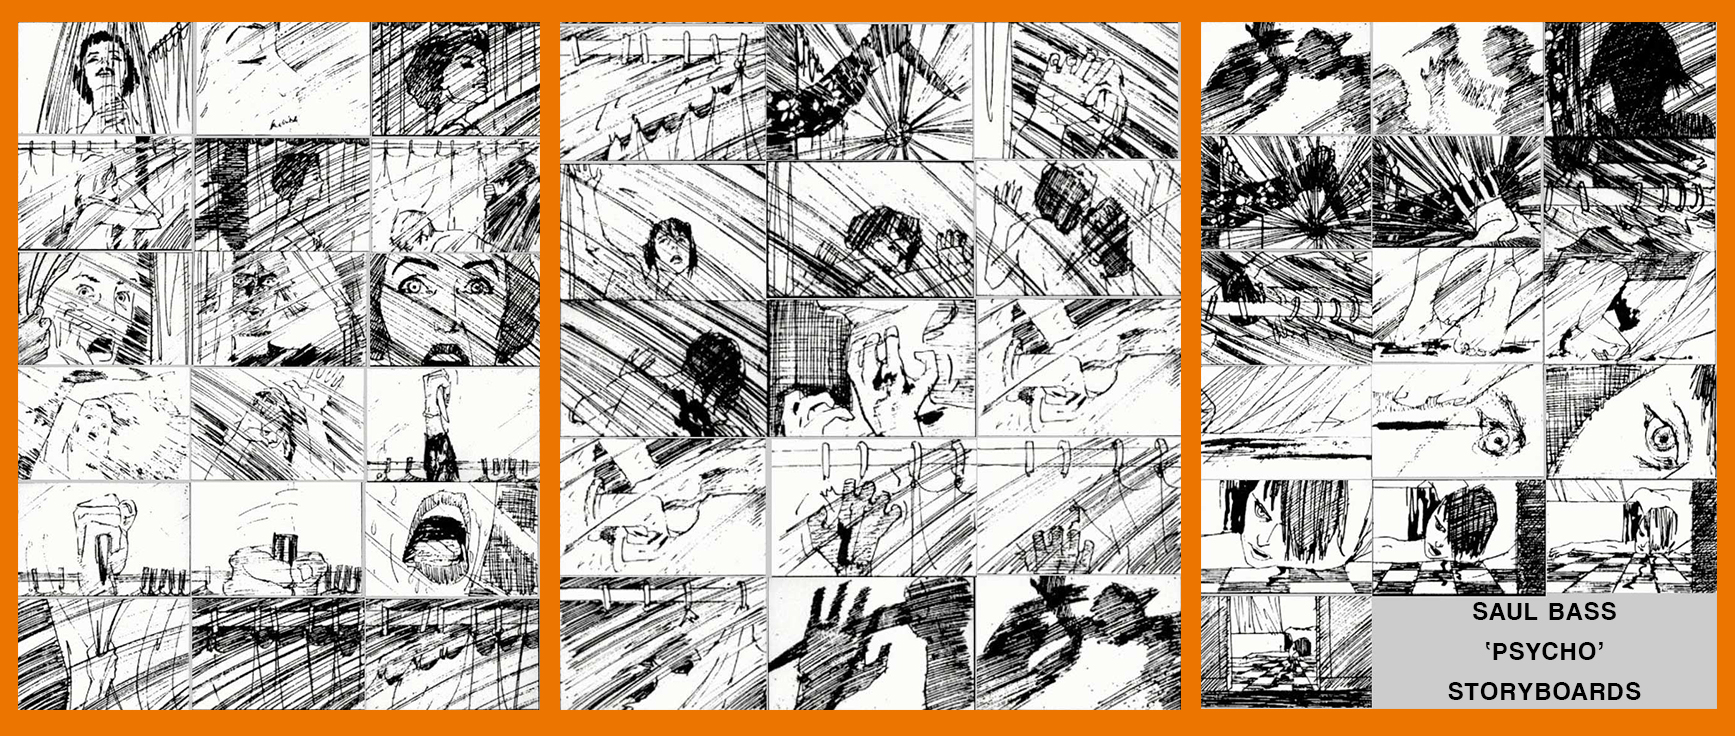 Saul Bass storyboards for Psycho